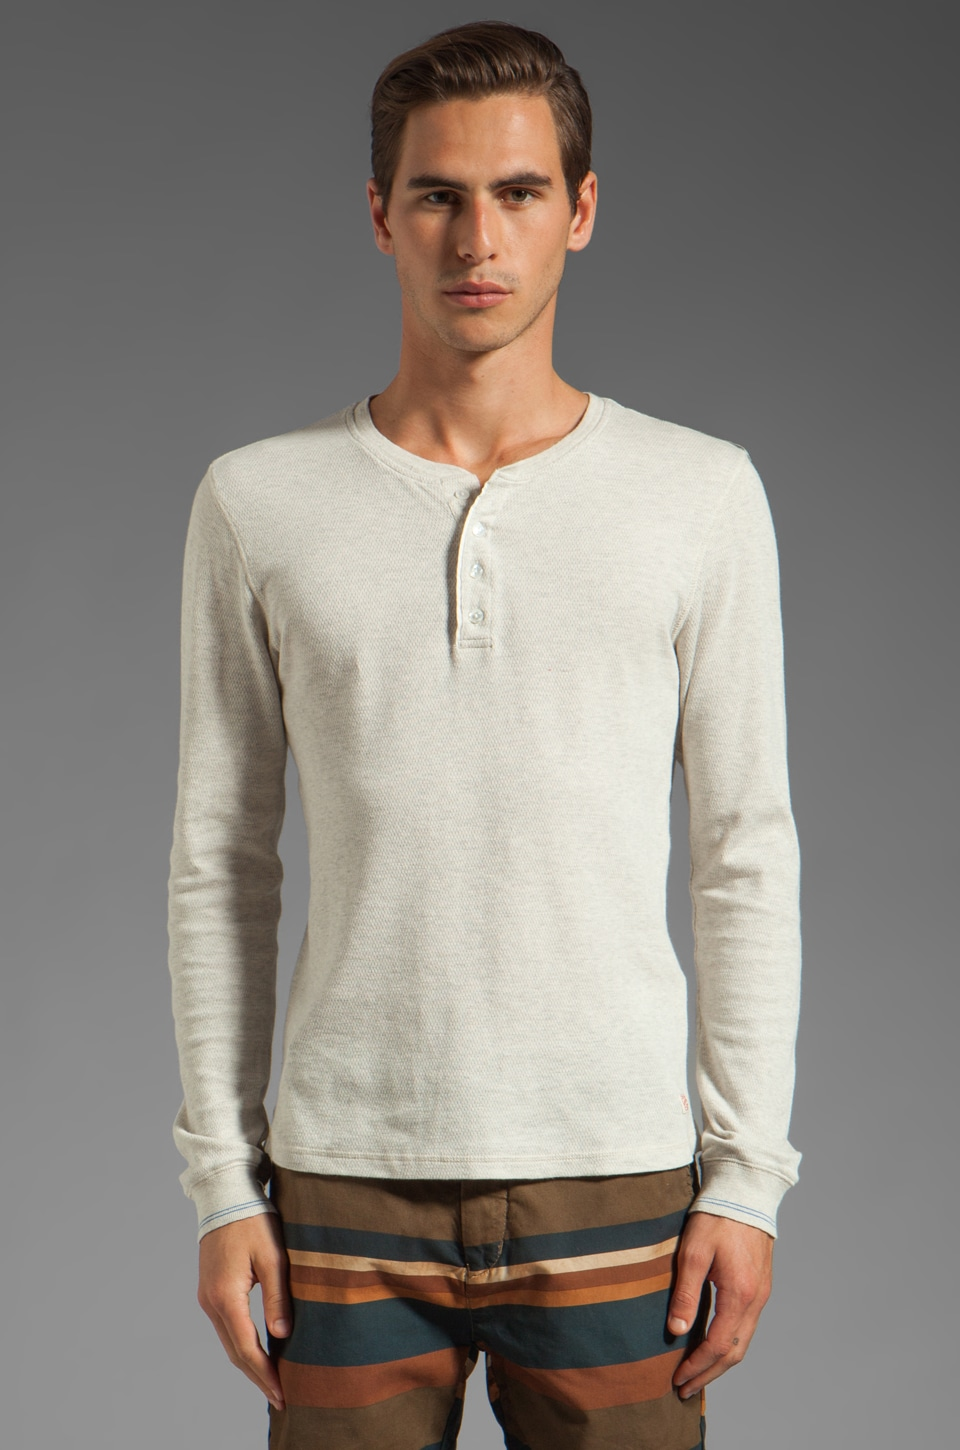 Scotch & Soda Long Sleeve Henley in Ecru